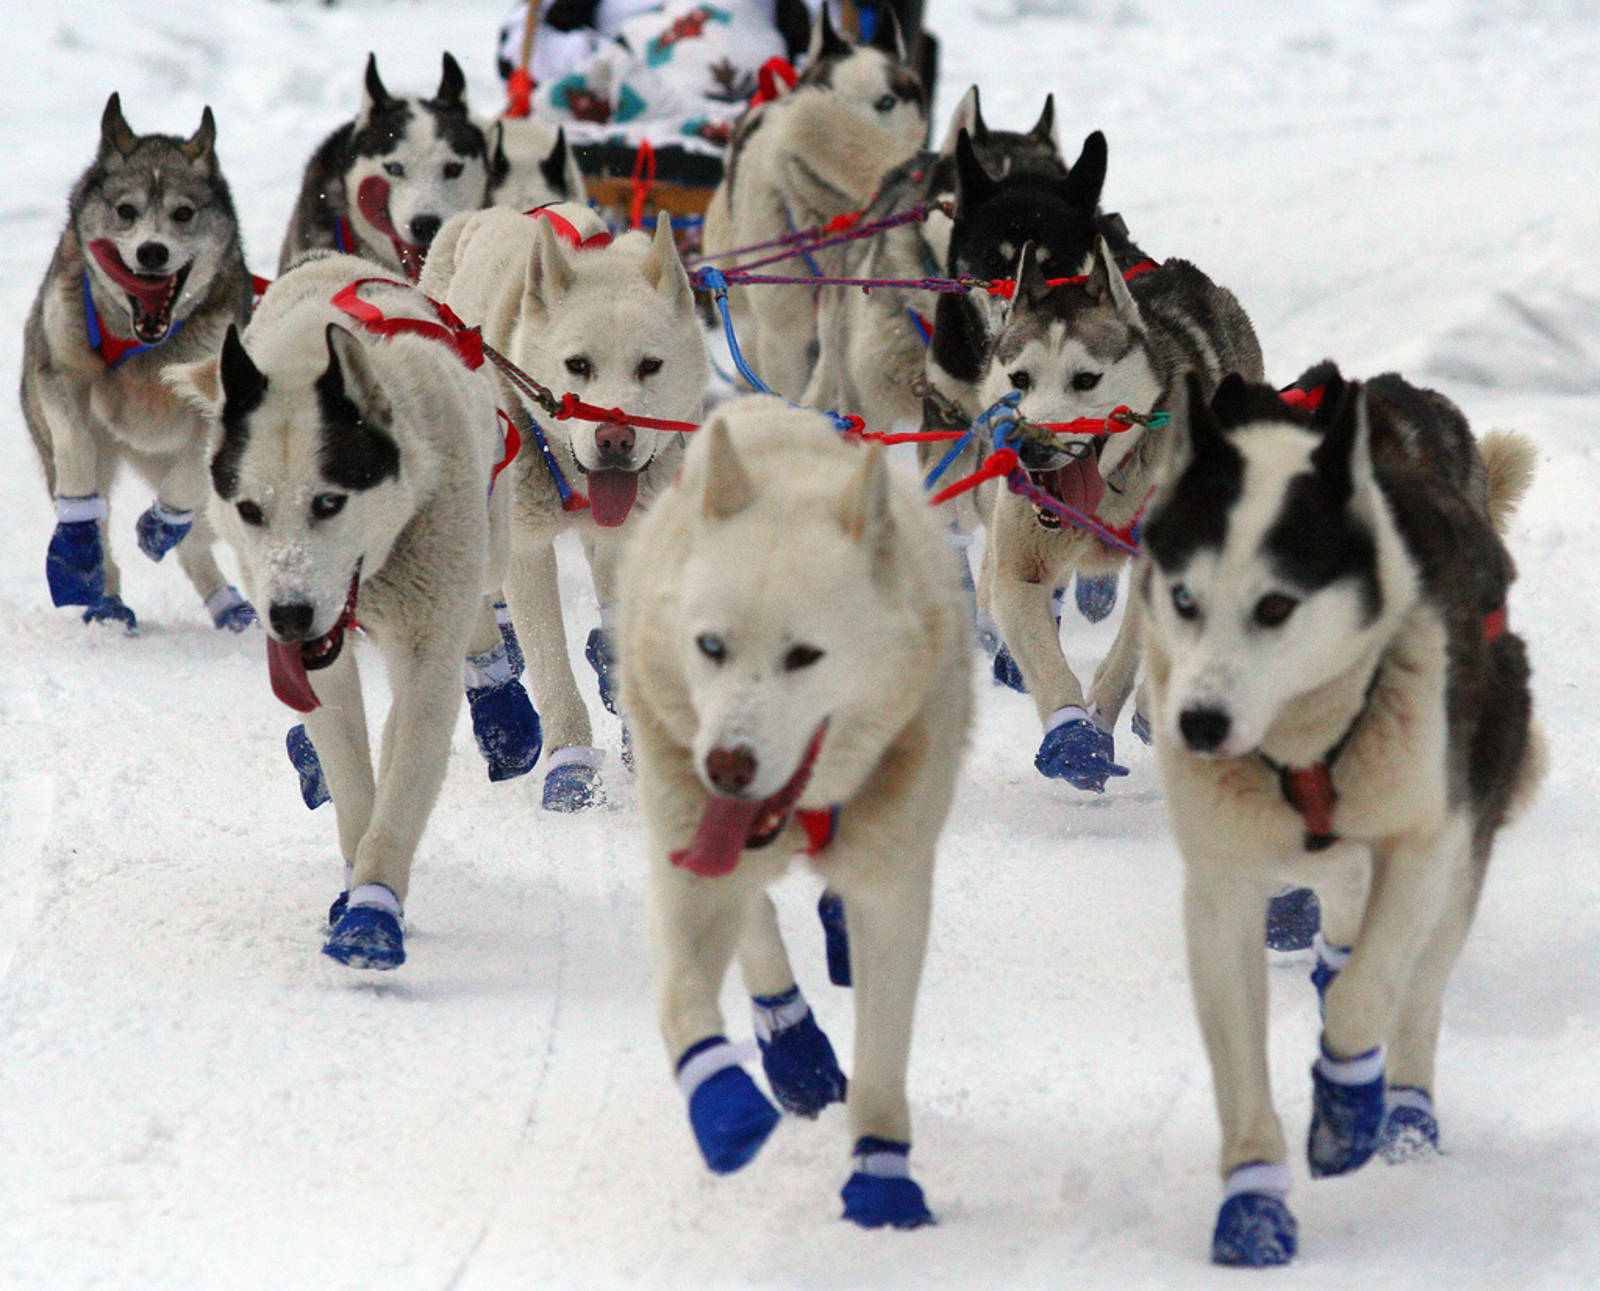 The Cruelty Behind Sled Dog Races